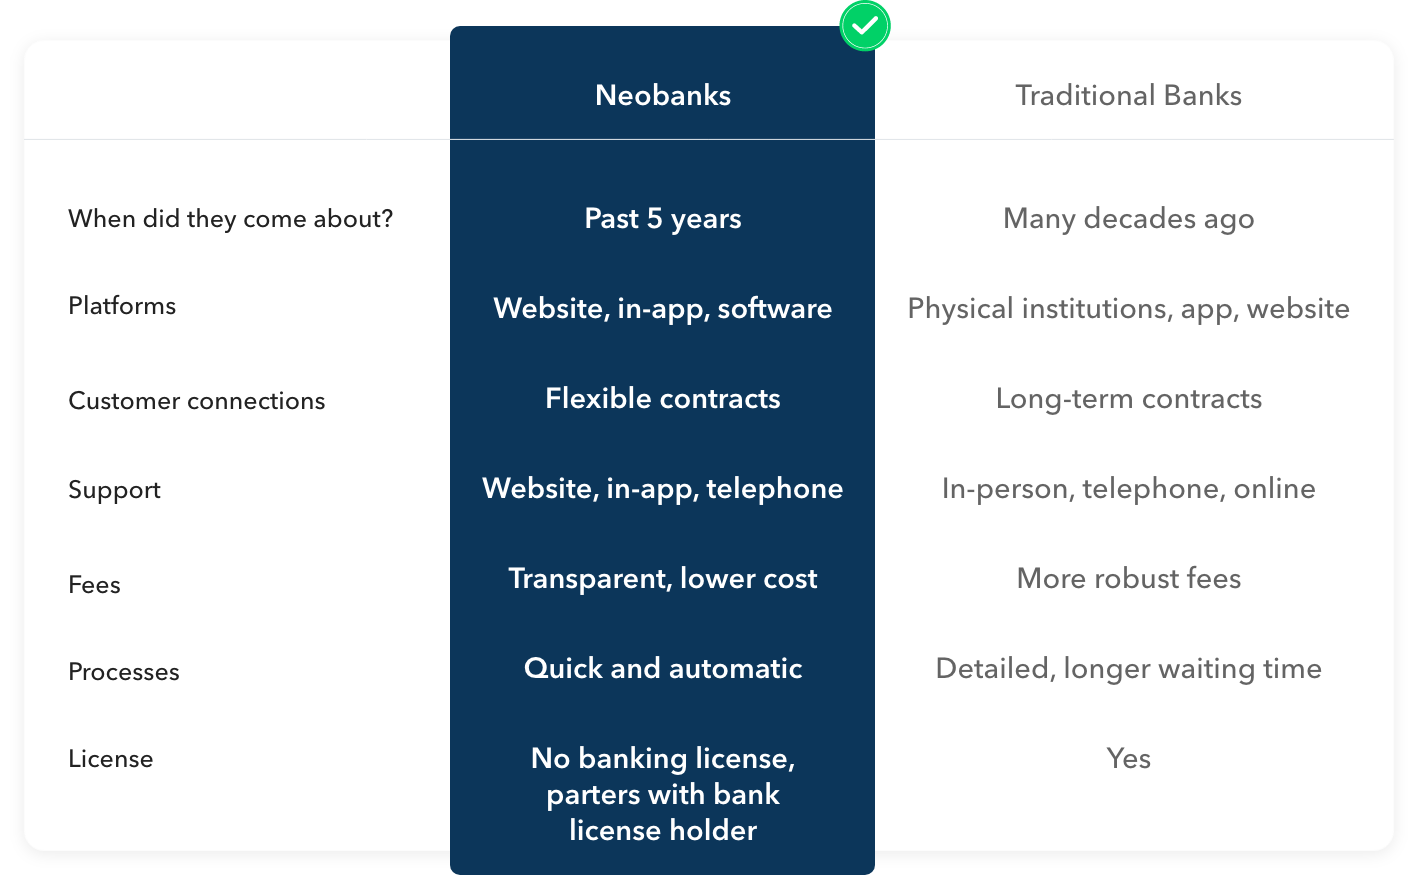 differences between neobanks and traditional banks